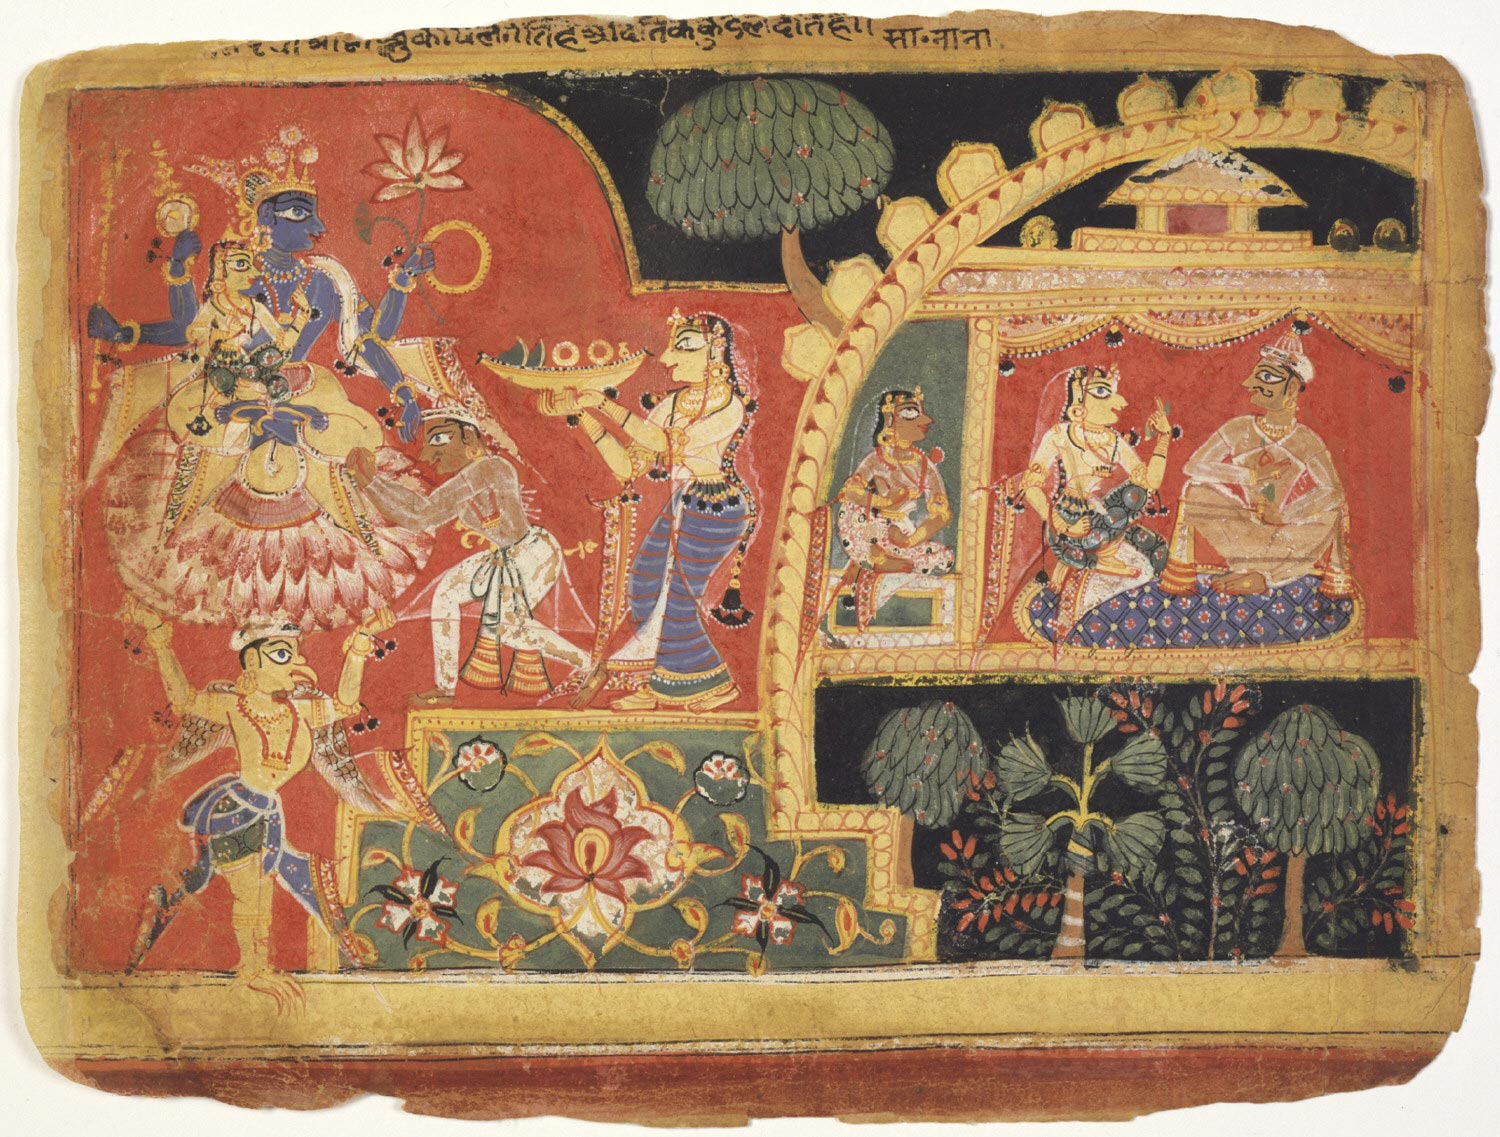 The Earth Goddess Returns the Stolen Goods to Krishna and Pays Homage to Him